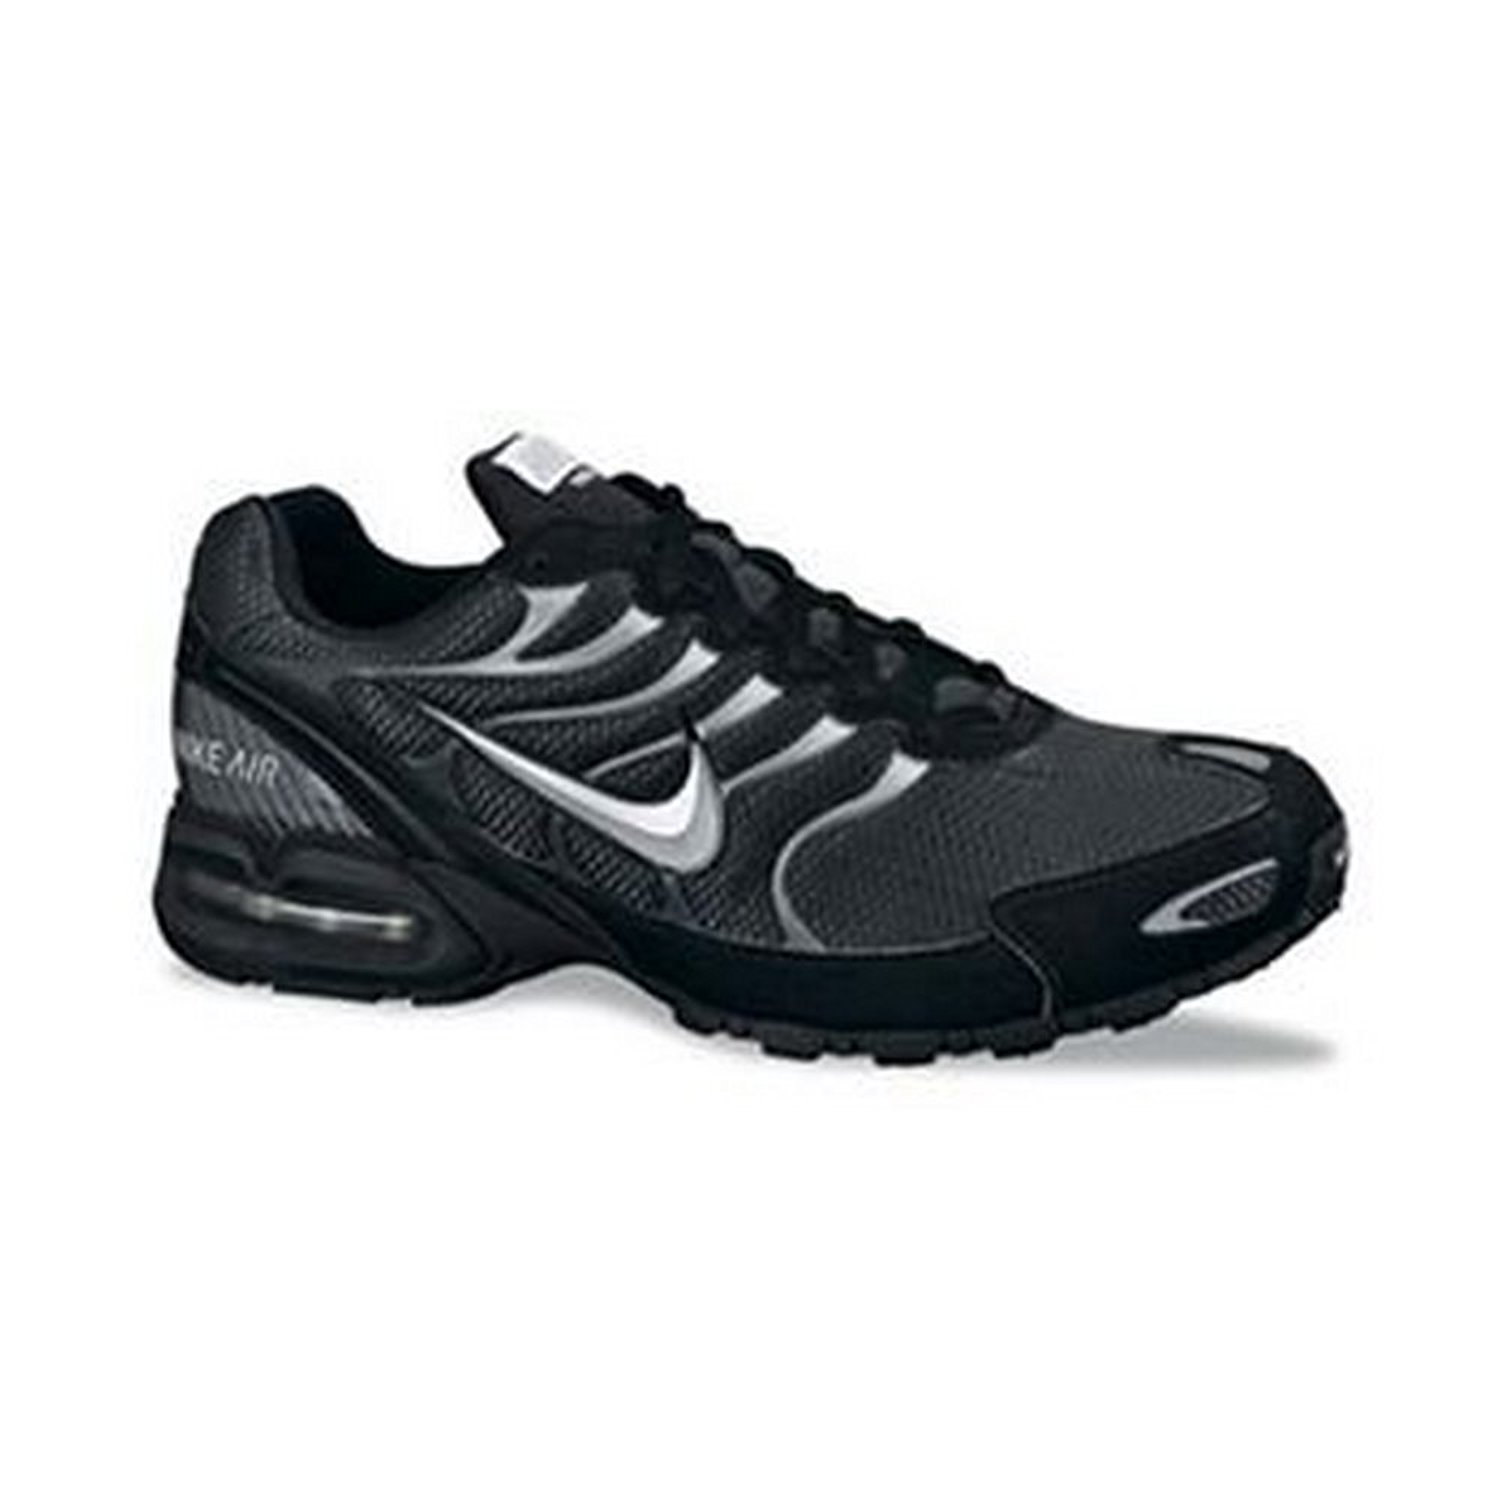 Men's Nike Air Max Torch 4 Running Shoe Anthracite Metallic Silver Black by Nike